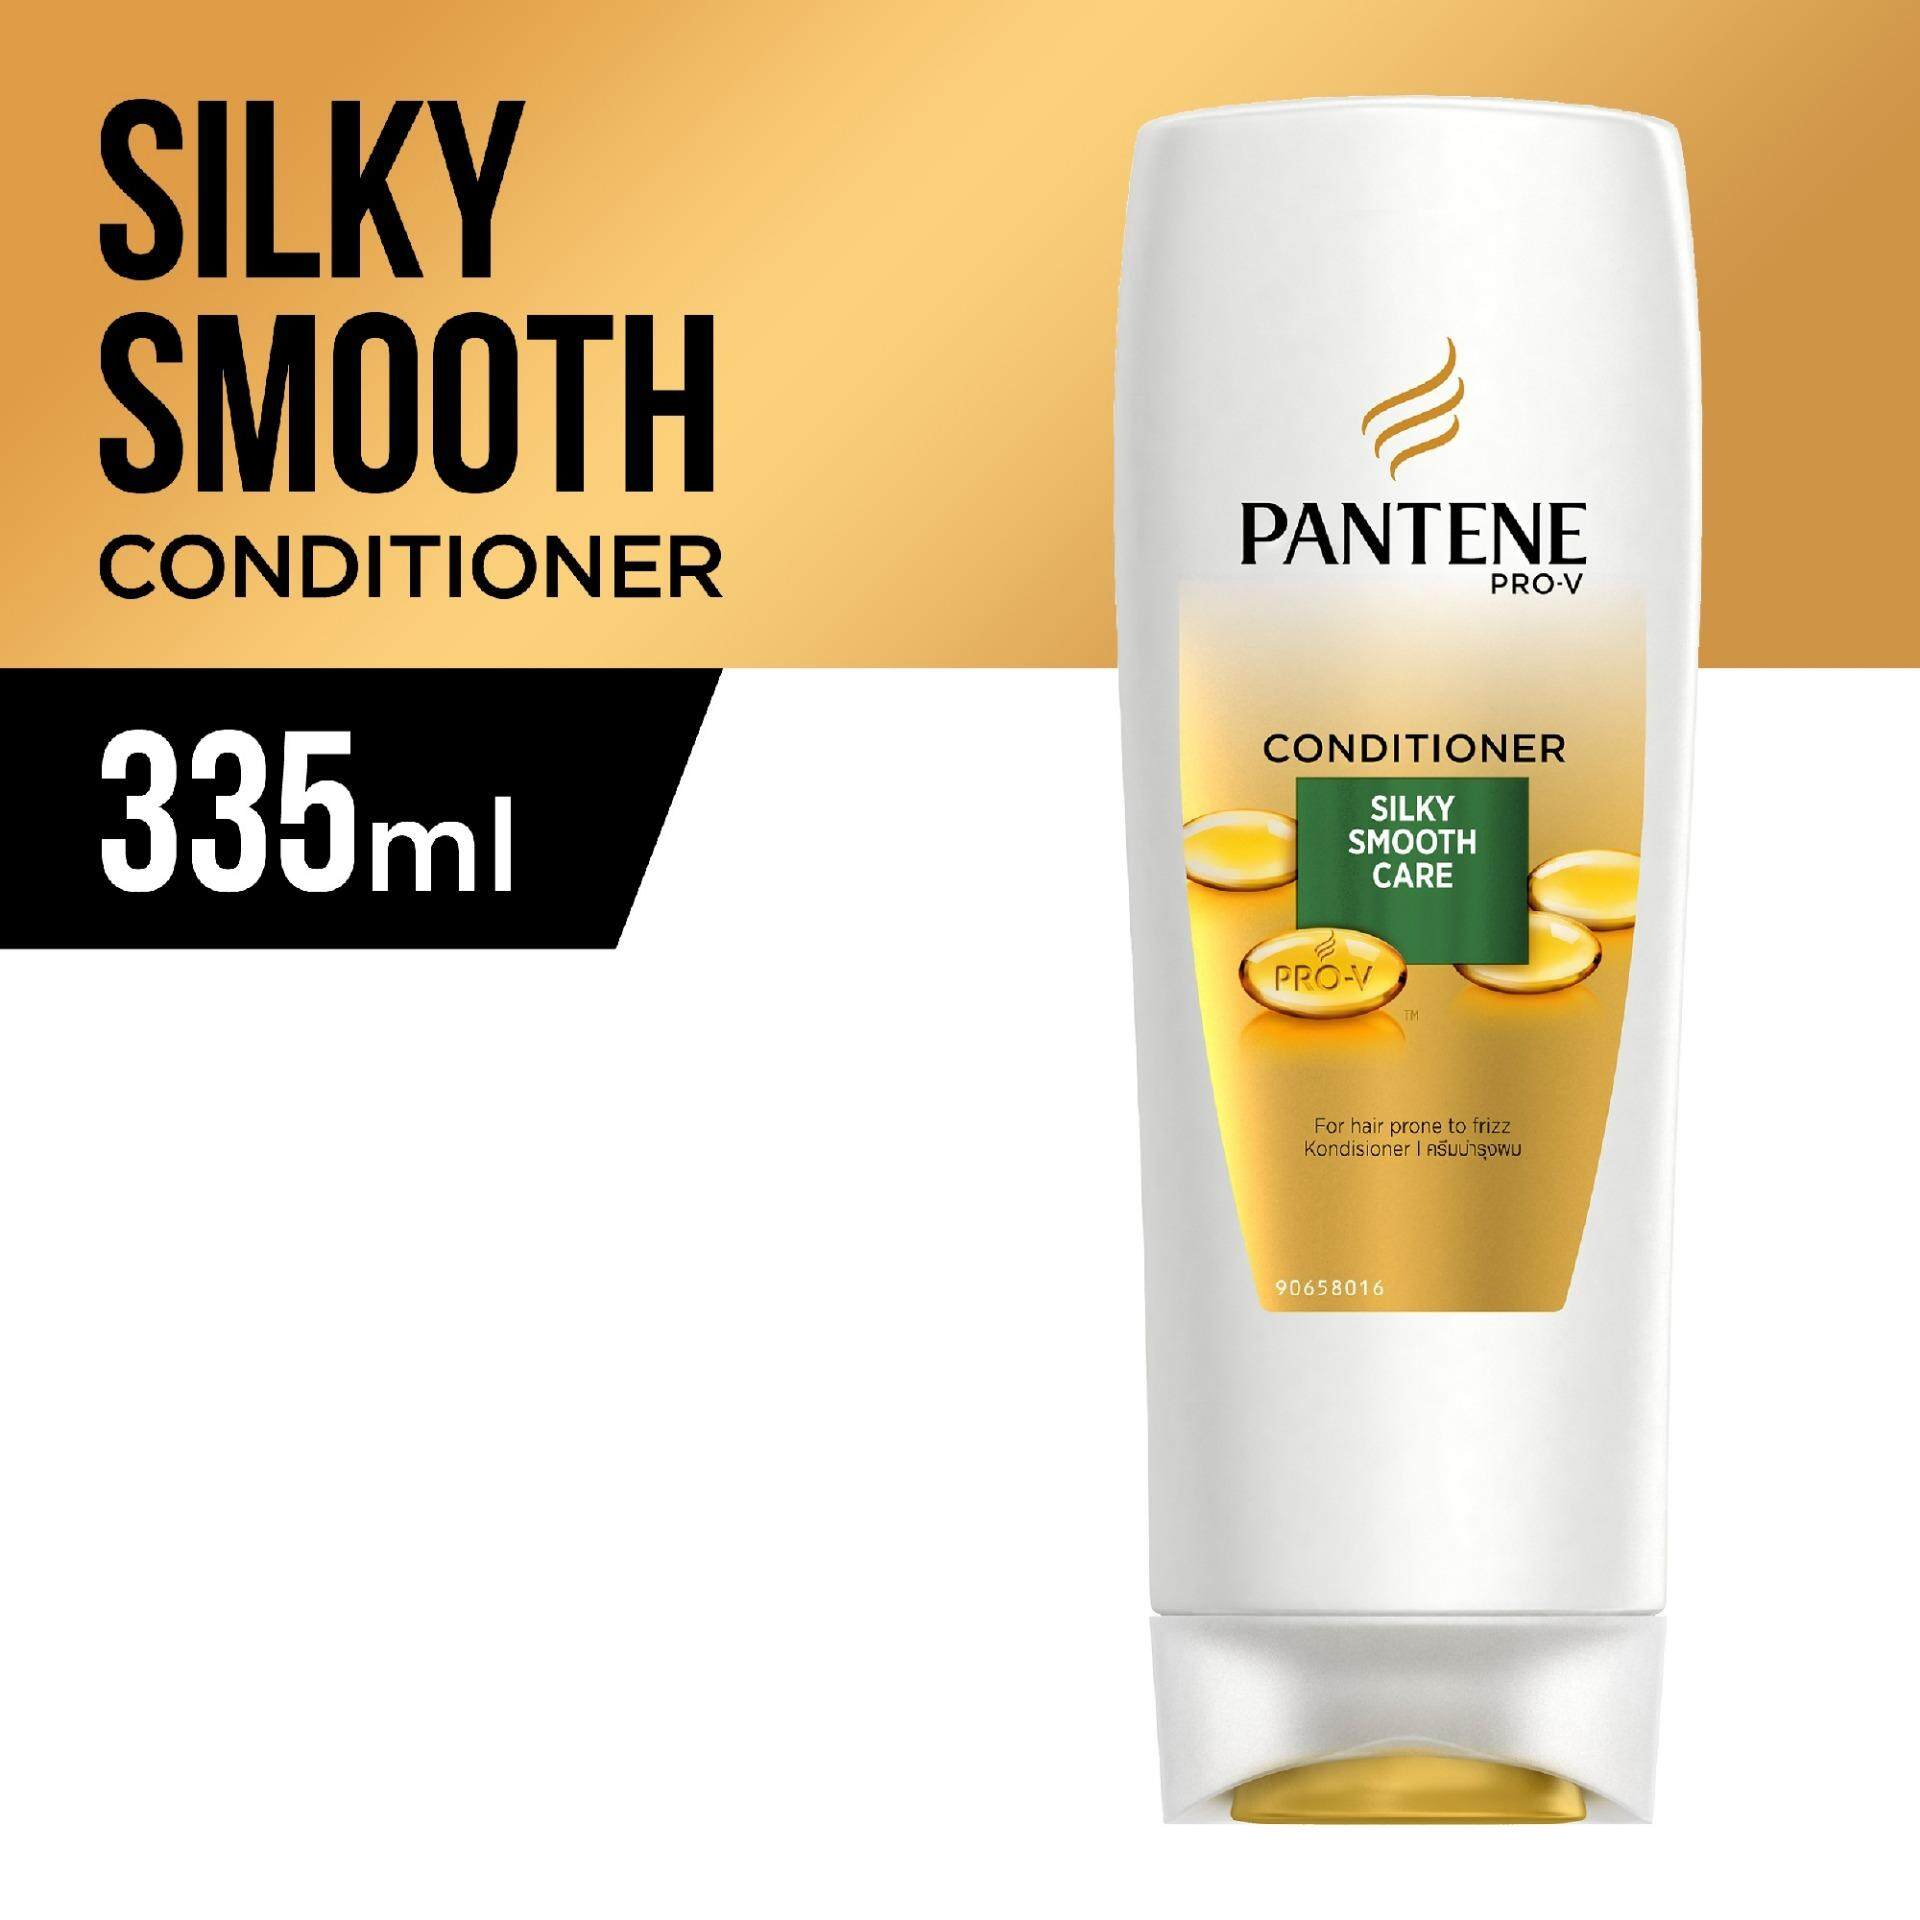 Pantene Silky Smooth Care Conditioner 335ml